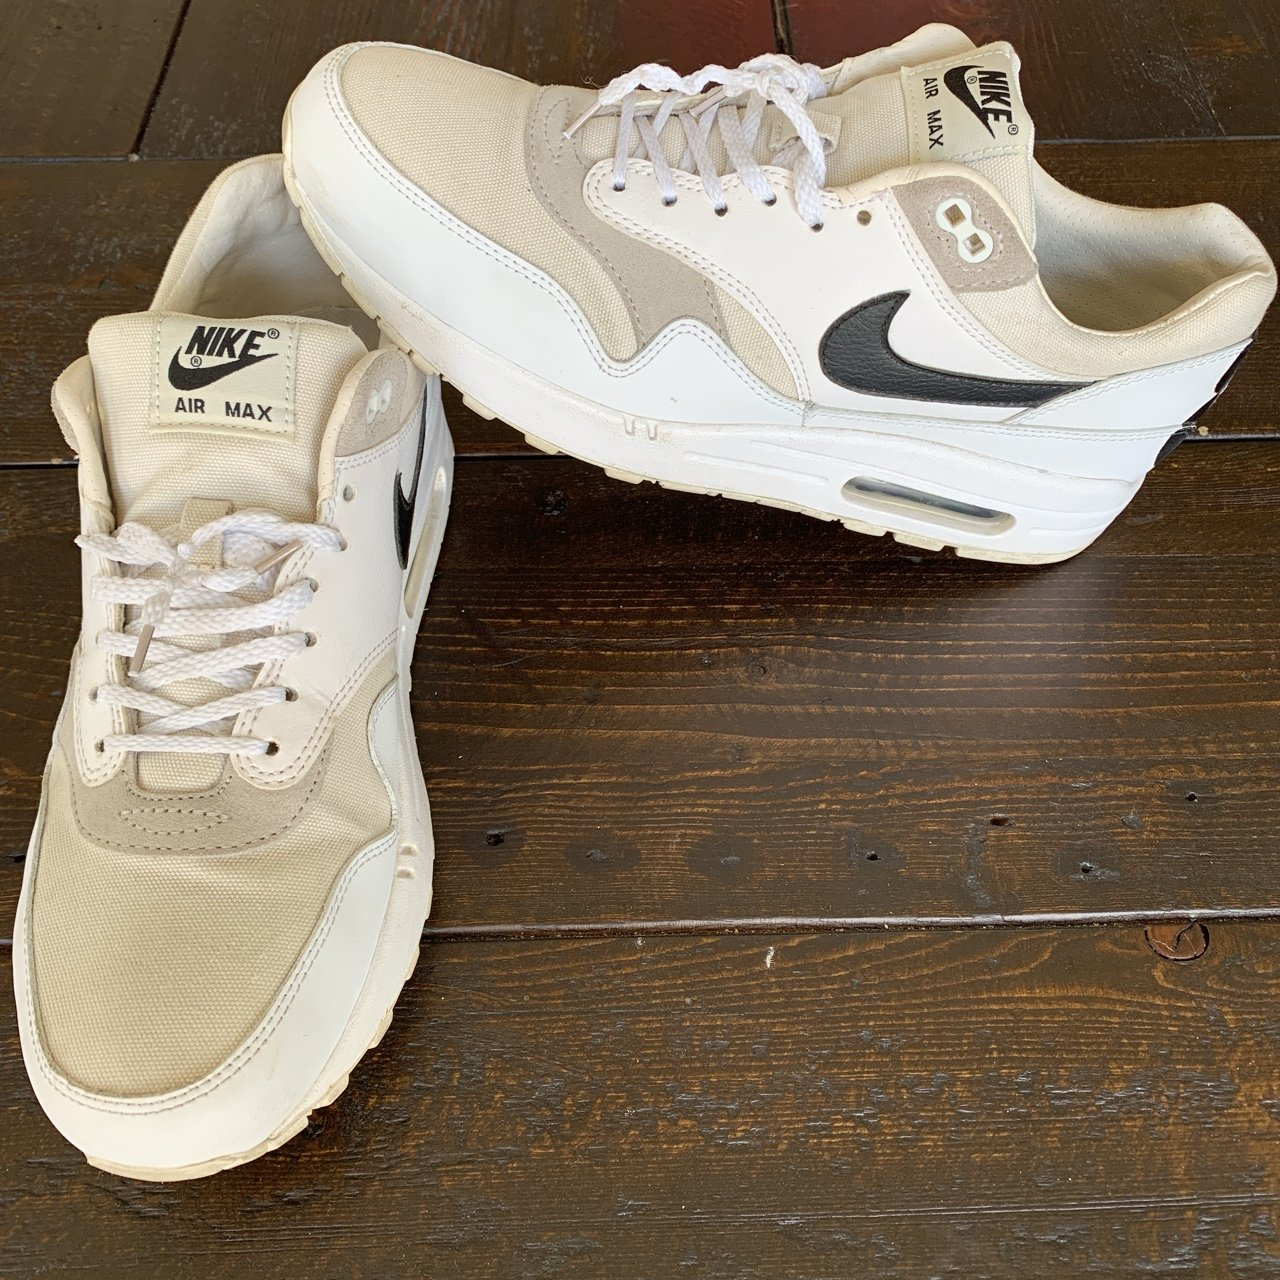 Nike air max 1 prm 1987 og deadstock Used but very clean 5 - Depop 7e2ae686f